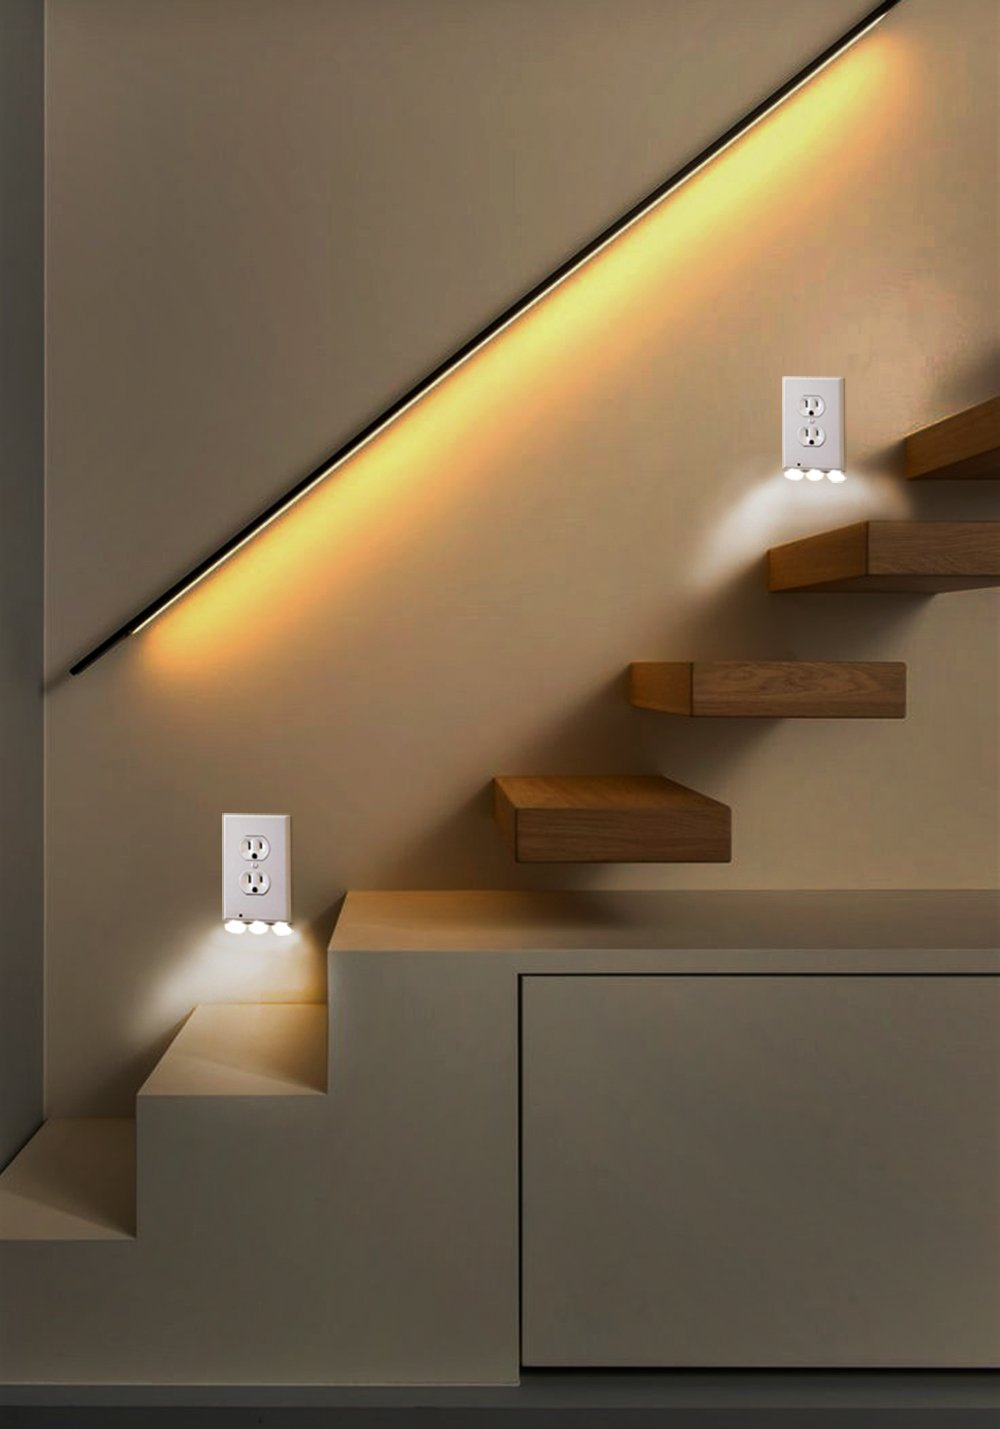 Outlet Wall Plate With Led Night Lights - 4 pack Duplex - Build on Sensor Nights Light - Electrical cover Plates Nightlight - Covers Plate Energy Efficient nightlights by Smart Outlet (Image #6)